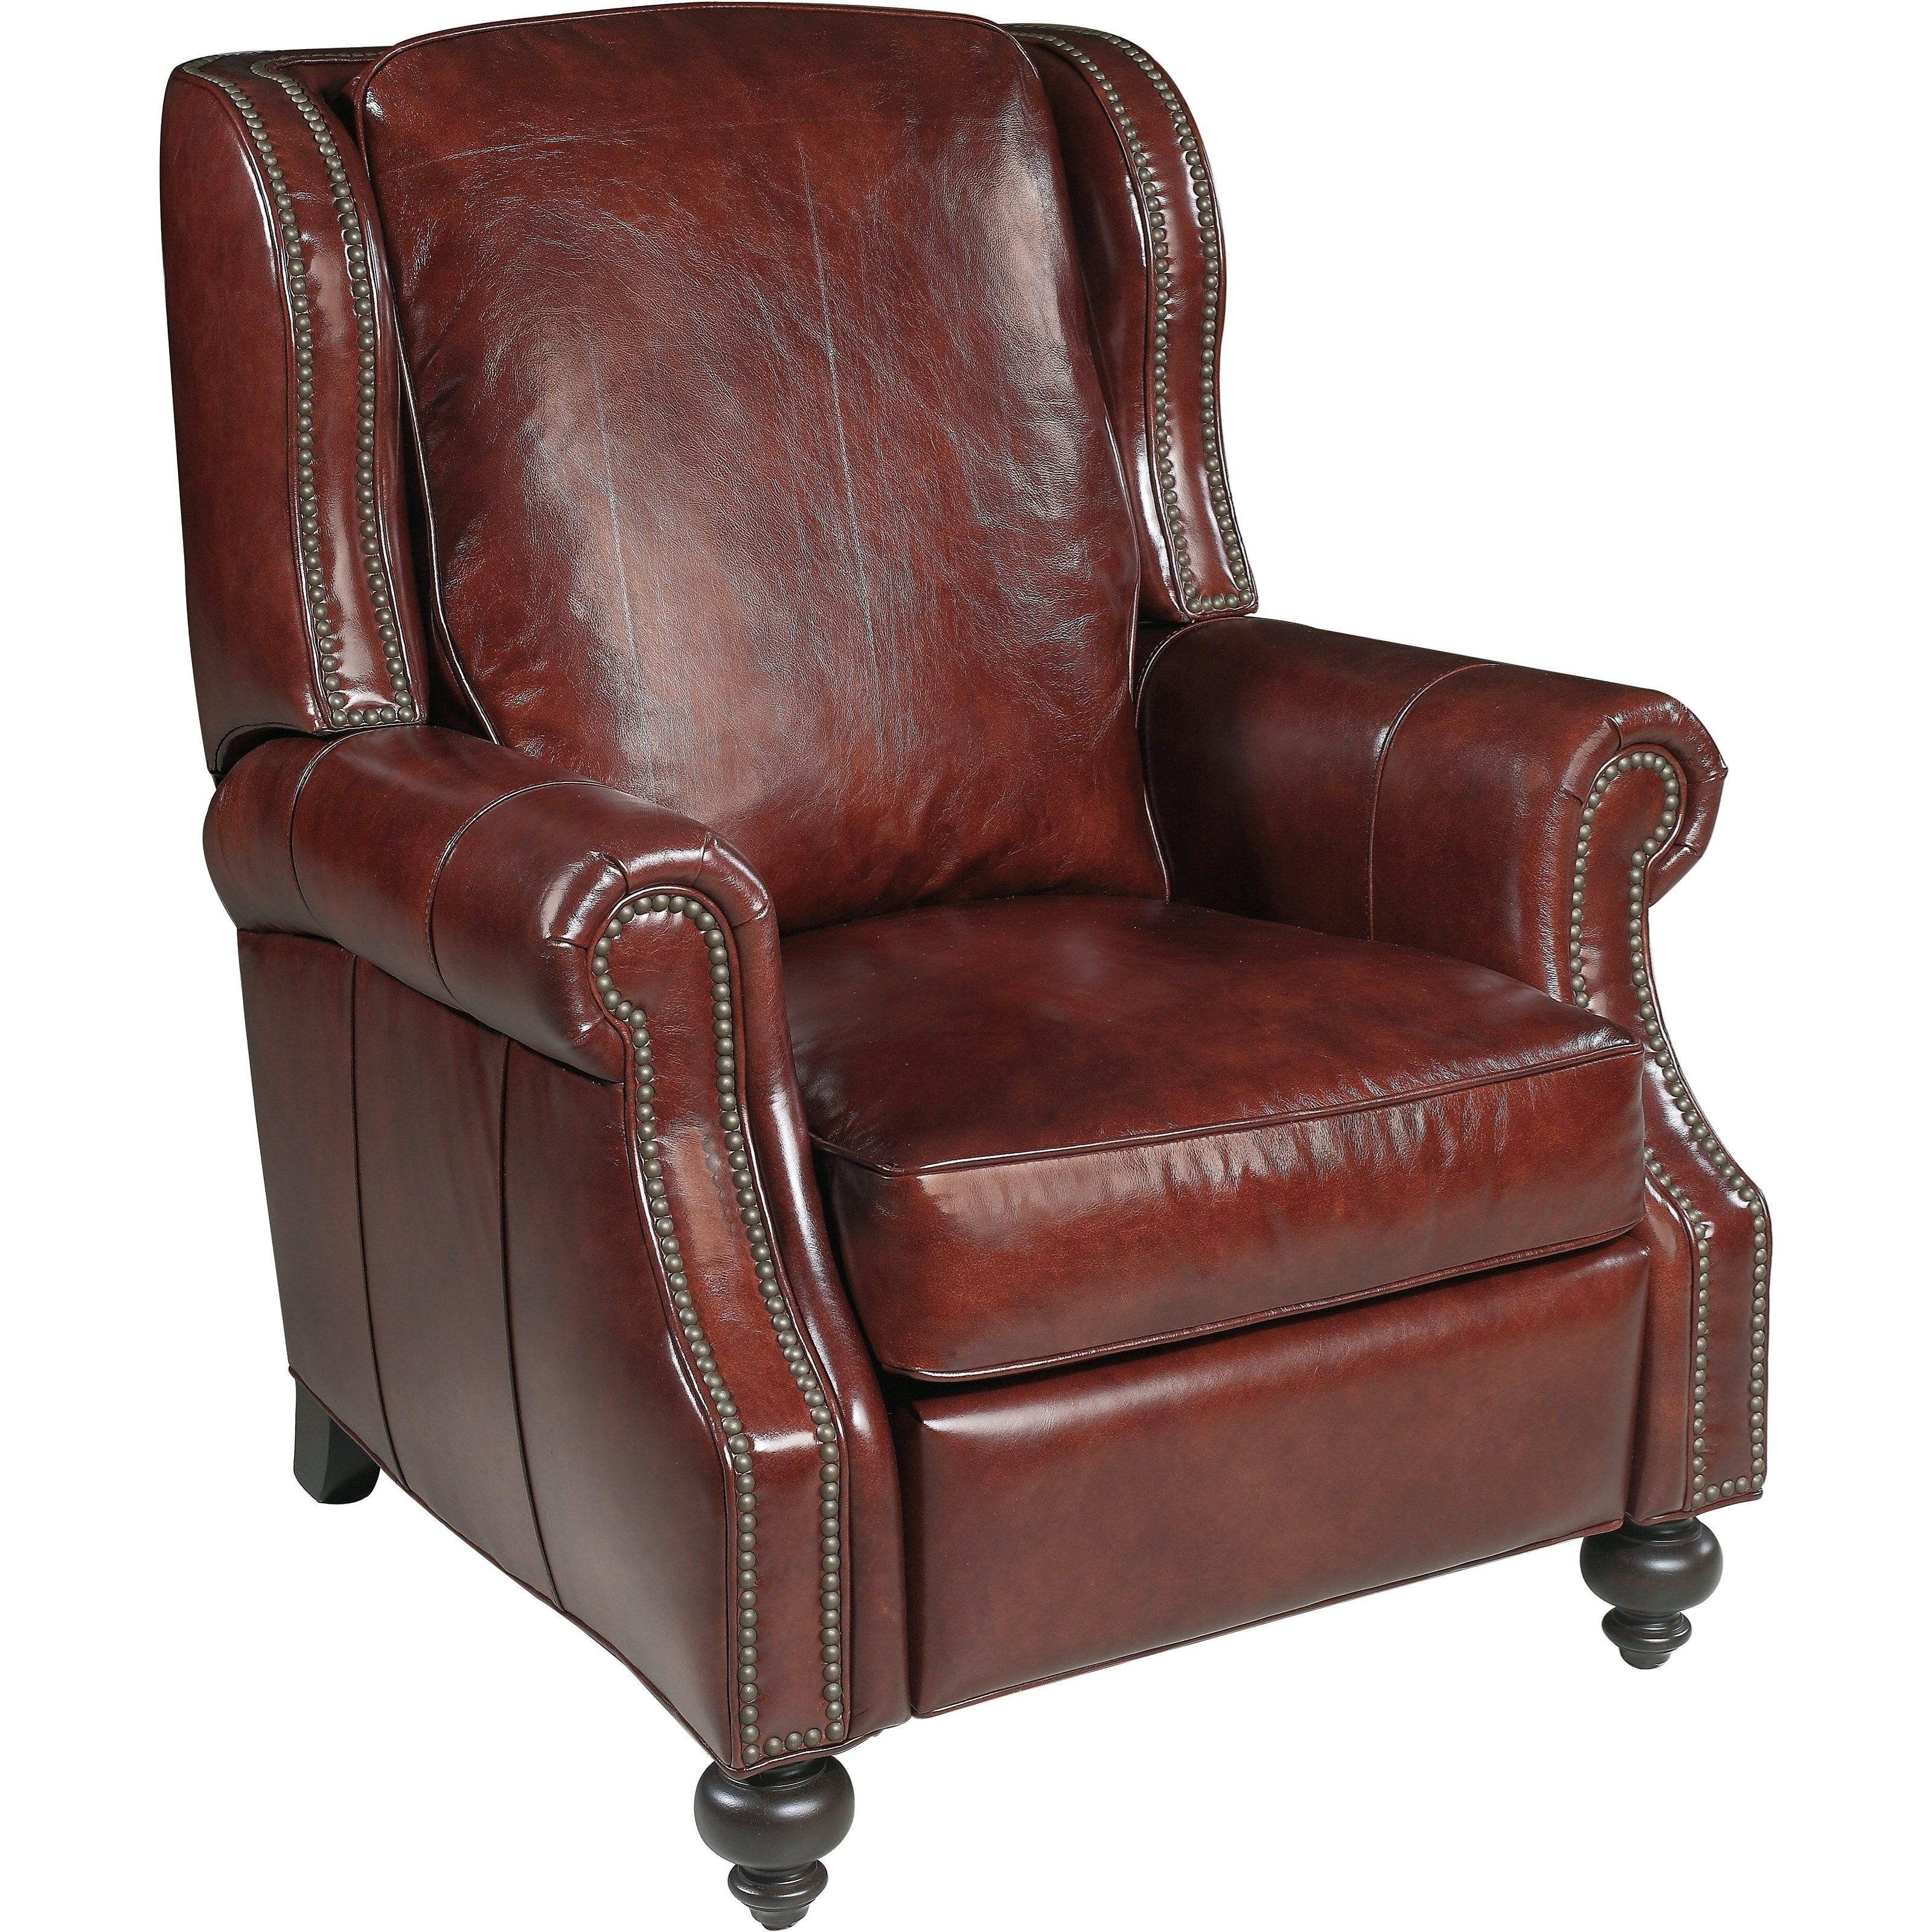 Reclining Chairs Drake Recliner by Hooker Furniture at Baer's Furniture